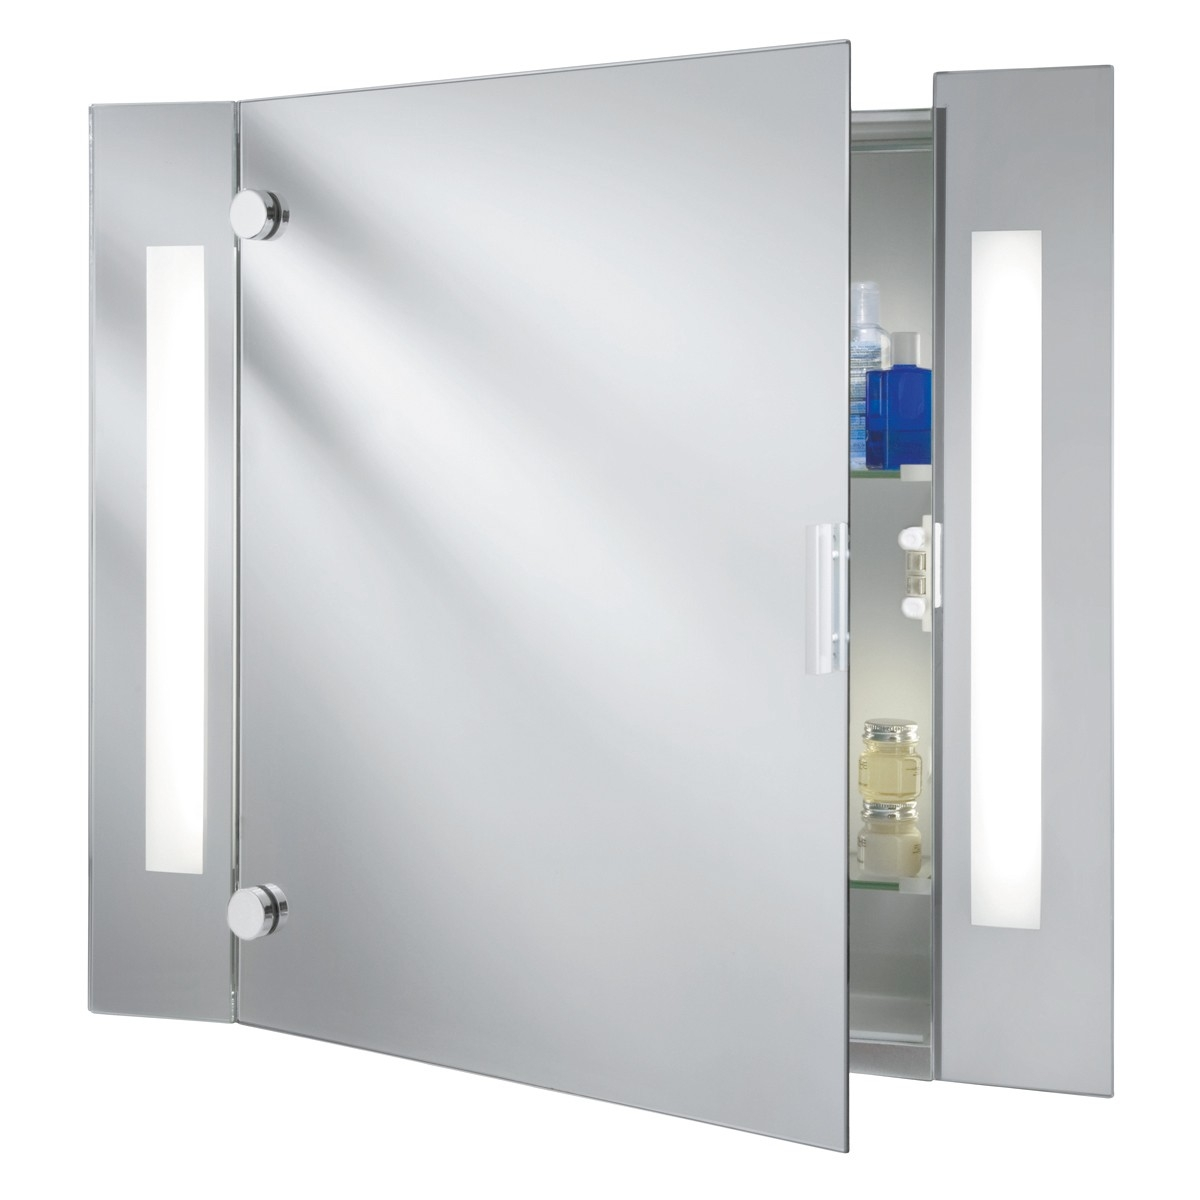 Permalink to Illuminated Bathroom Mirror Cabinets With Shaver Socket